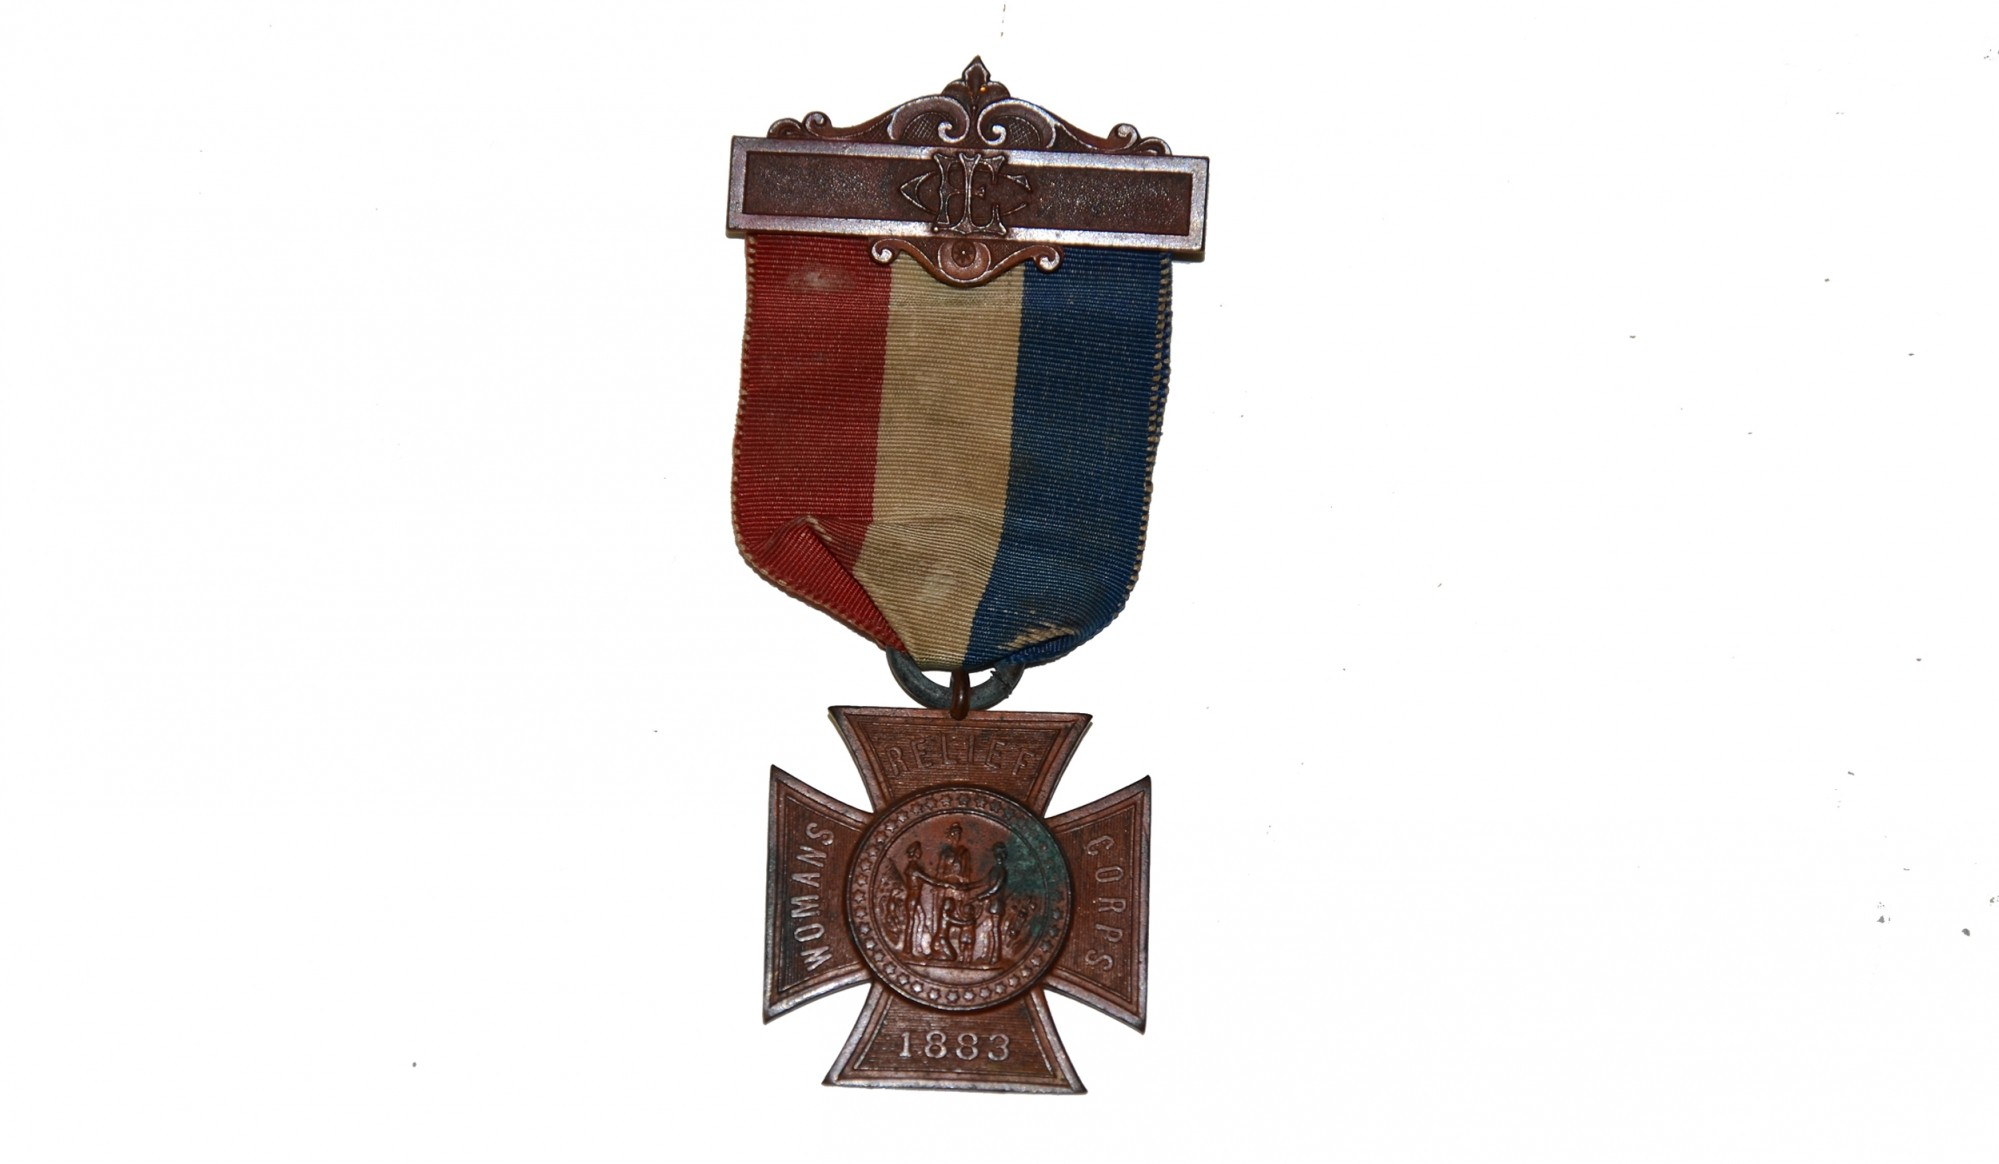 G.A.R. WOMAN'S RELIEF CORPS MEDAL, 1883